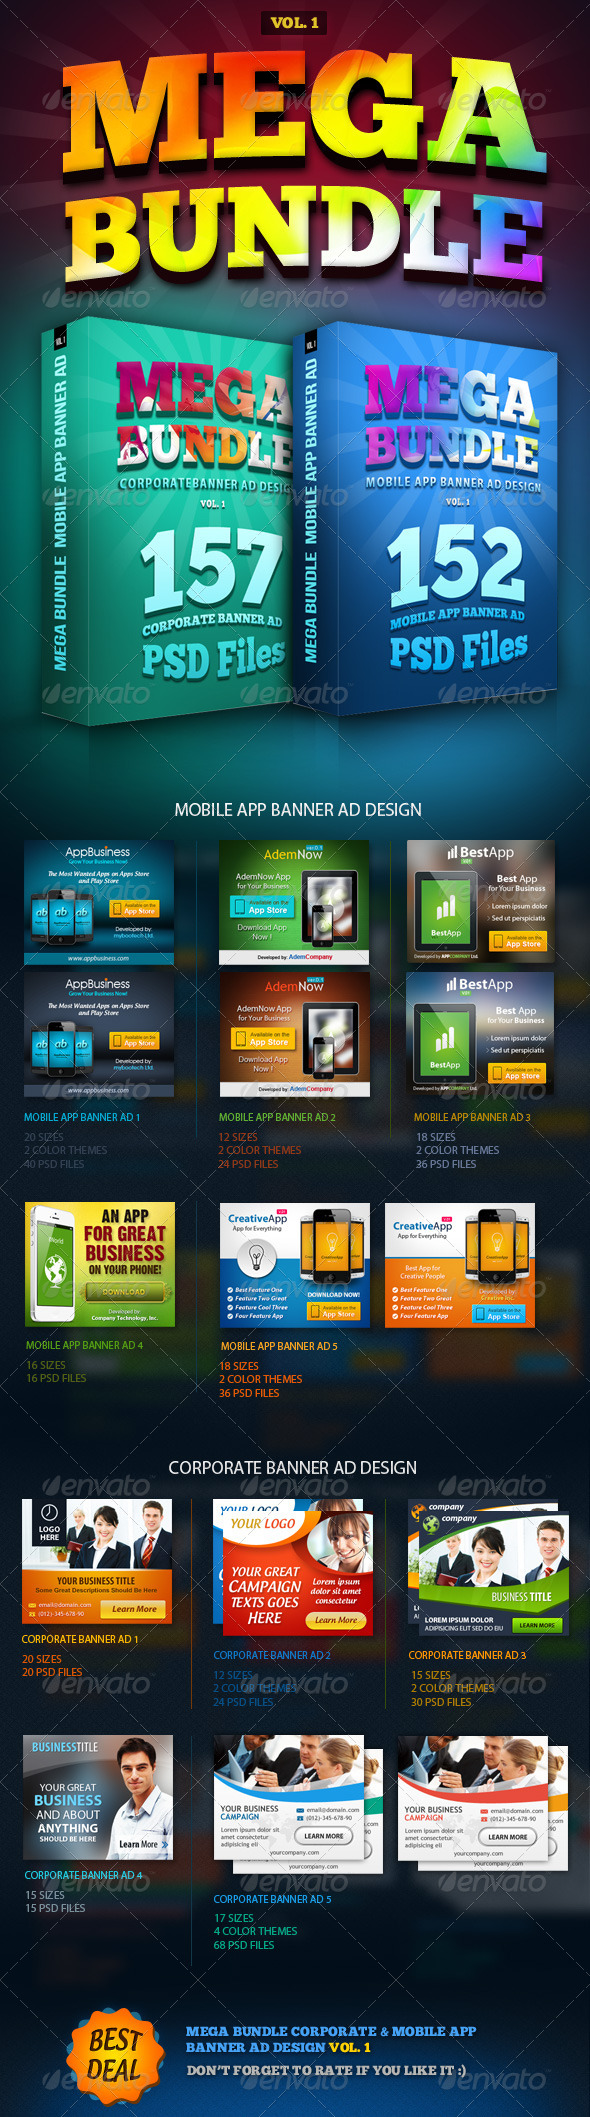 GraphicRiver MEGA BUNDLE Vol.1 Corporate & Mobile App Banner Ad 6187403